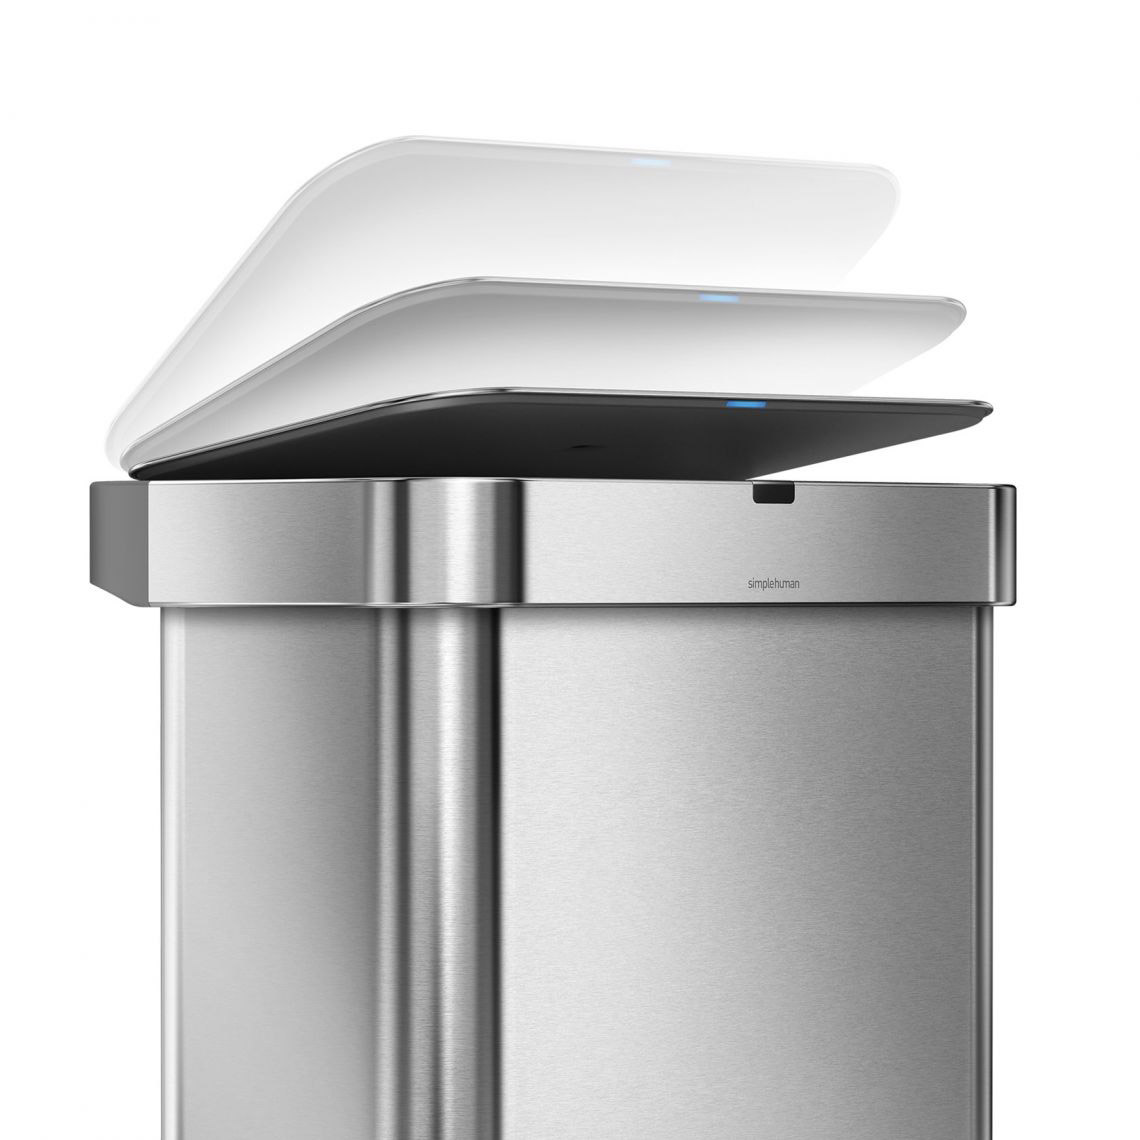 Best products 2019 - Simplehuman Rectangular Sensor Can with Voice and Motion Sensor